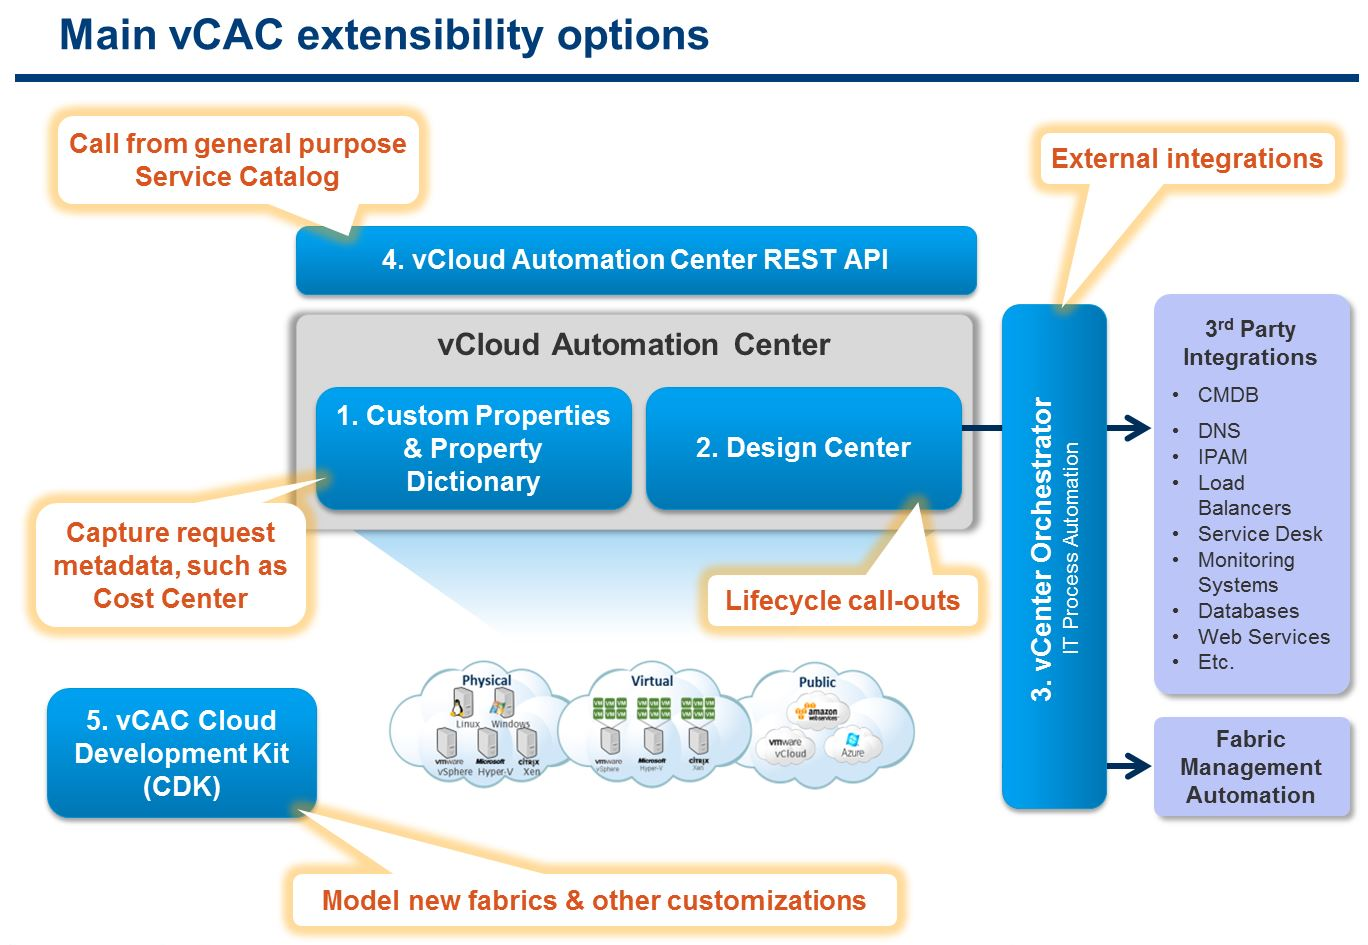 vCACExtensibility